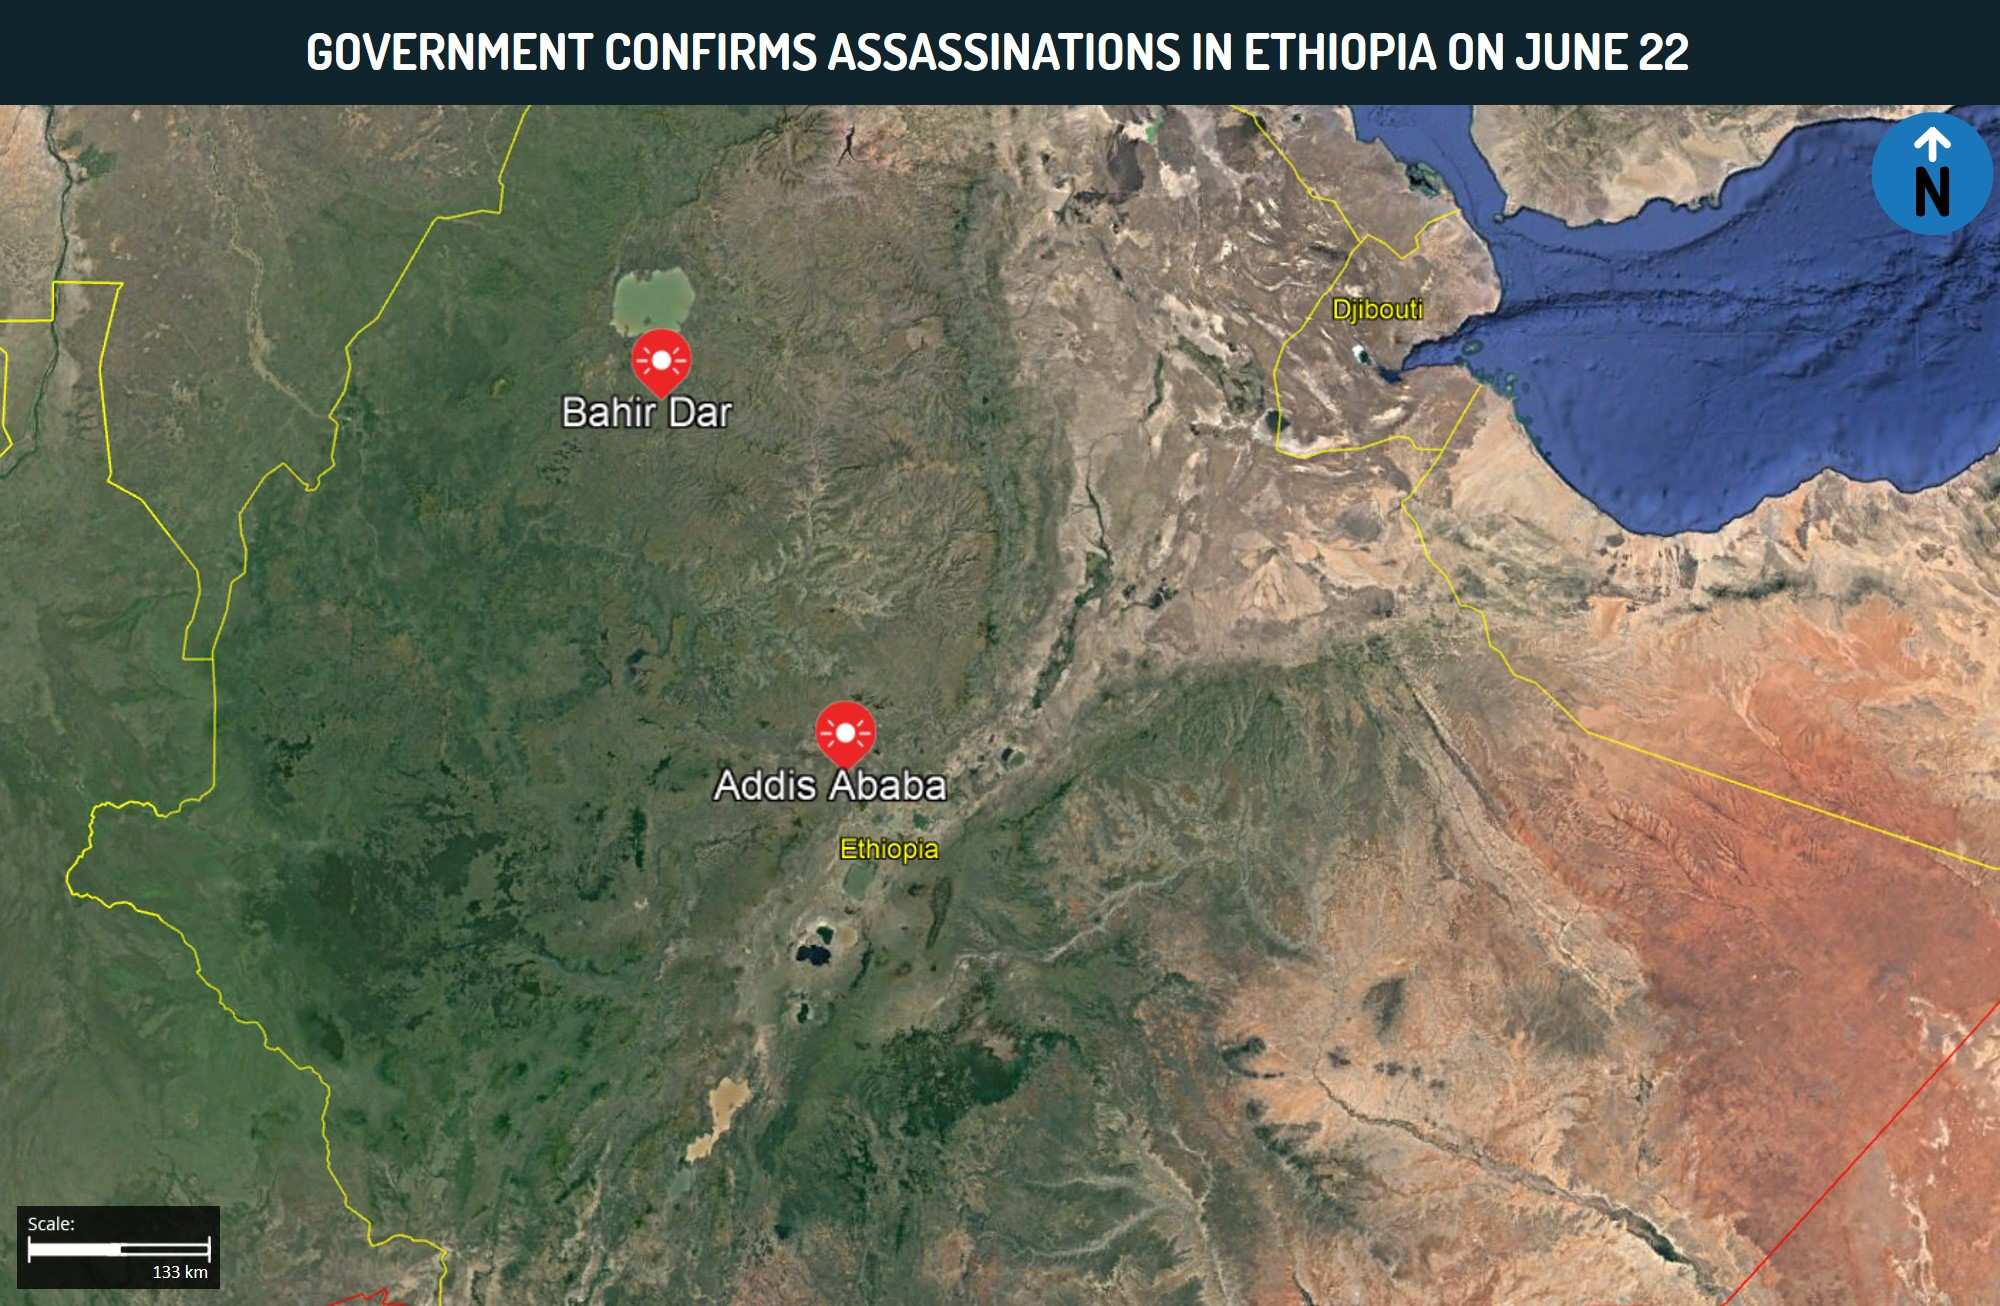 Government Confirms Assassinations in Ethiopia on June 22